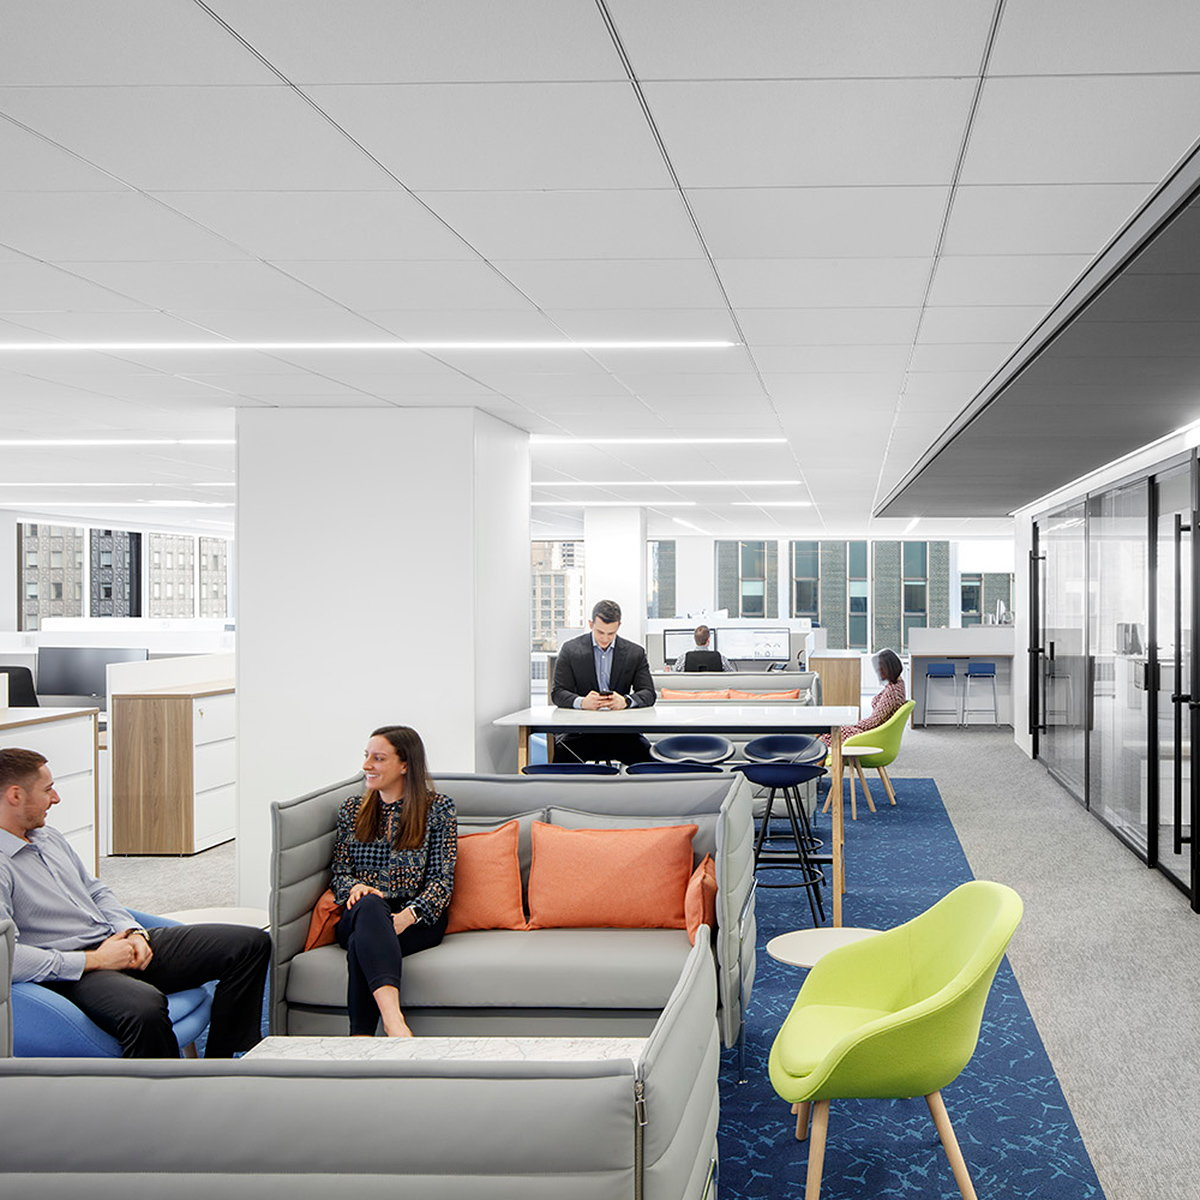 TPG Architecture Designs New NYC Workplace for Broadridge Financial Solutions